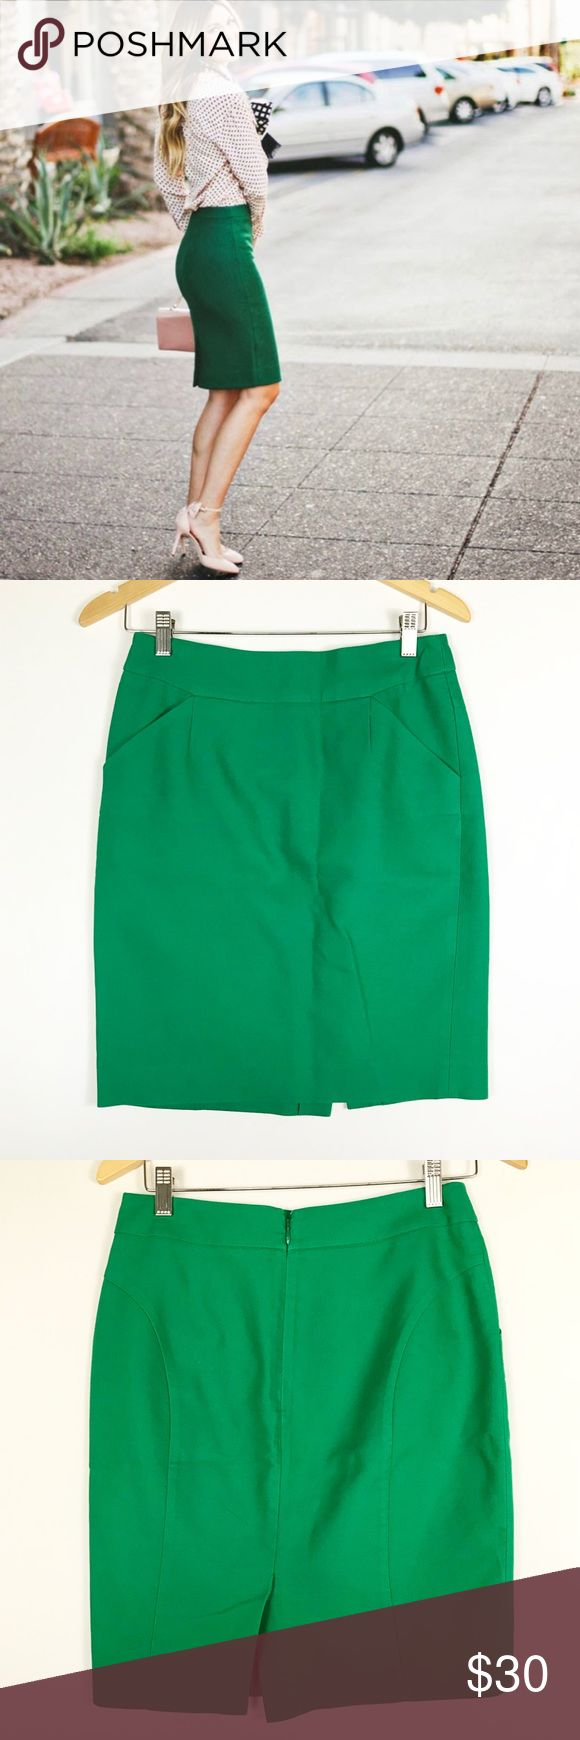 "J crew 2 green Pencil skirt in double-serge cotton Perfect pencil skirt Side pockets  Back vent Measures approx laying flat : 14.5"" waist 18""hip 21"" long J. Crew Skirts Pencil"